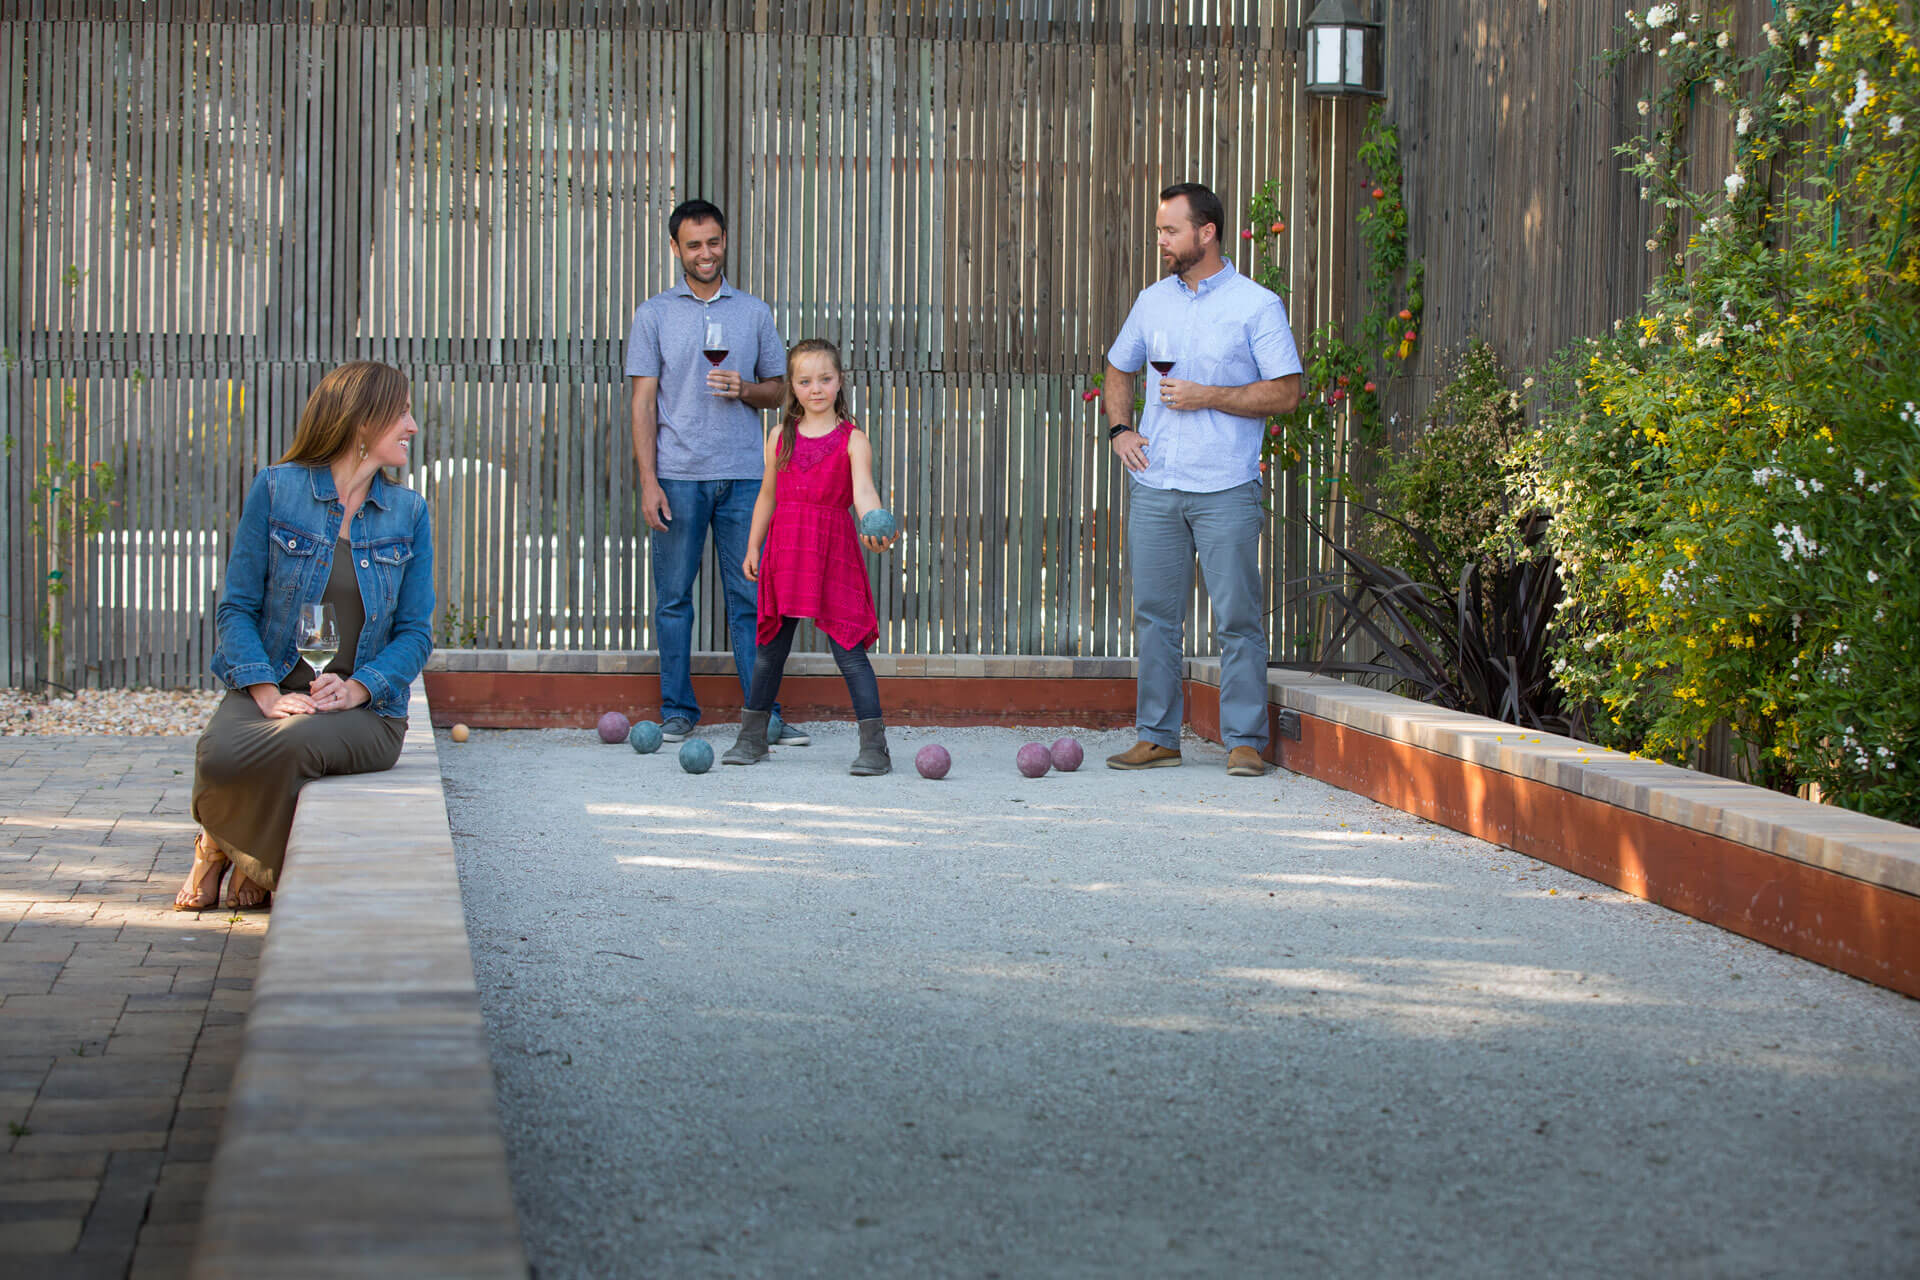 Play in the bocce court